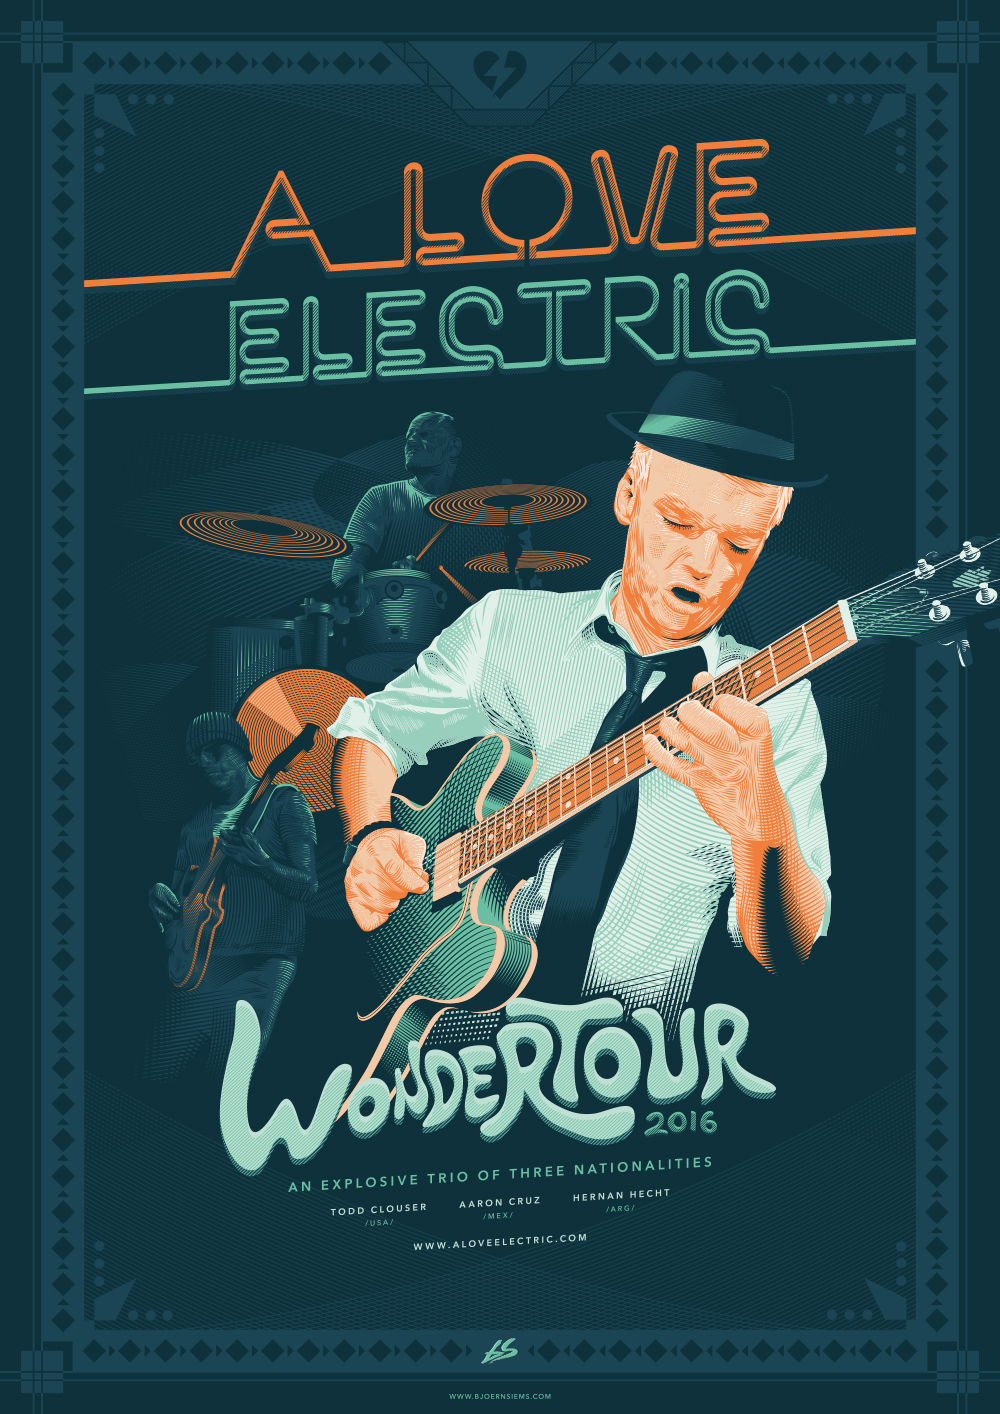 A Love Electric Wondertour 2016 Poster - Björn Siems